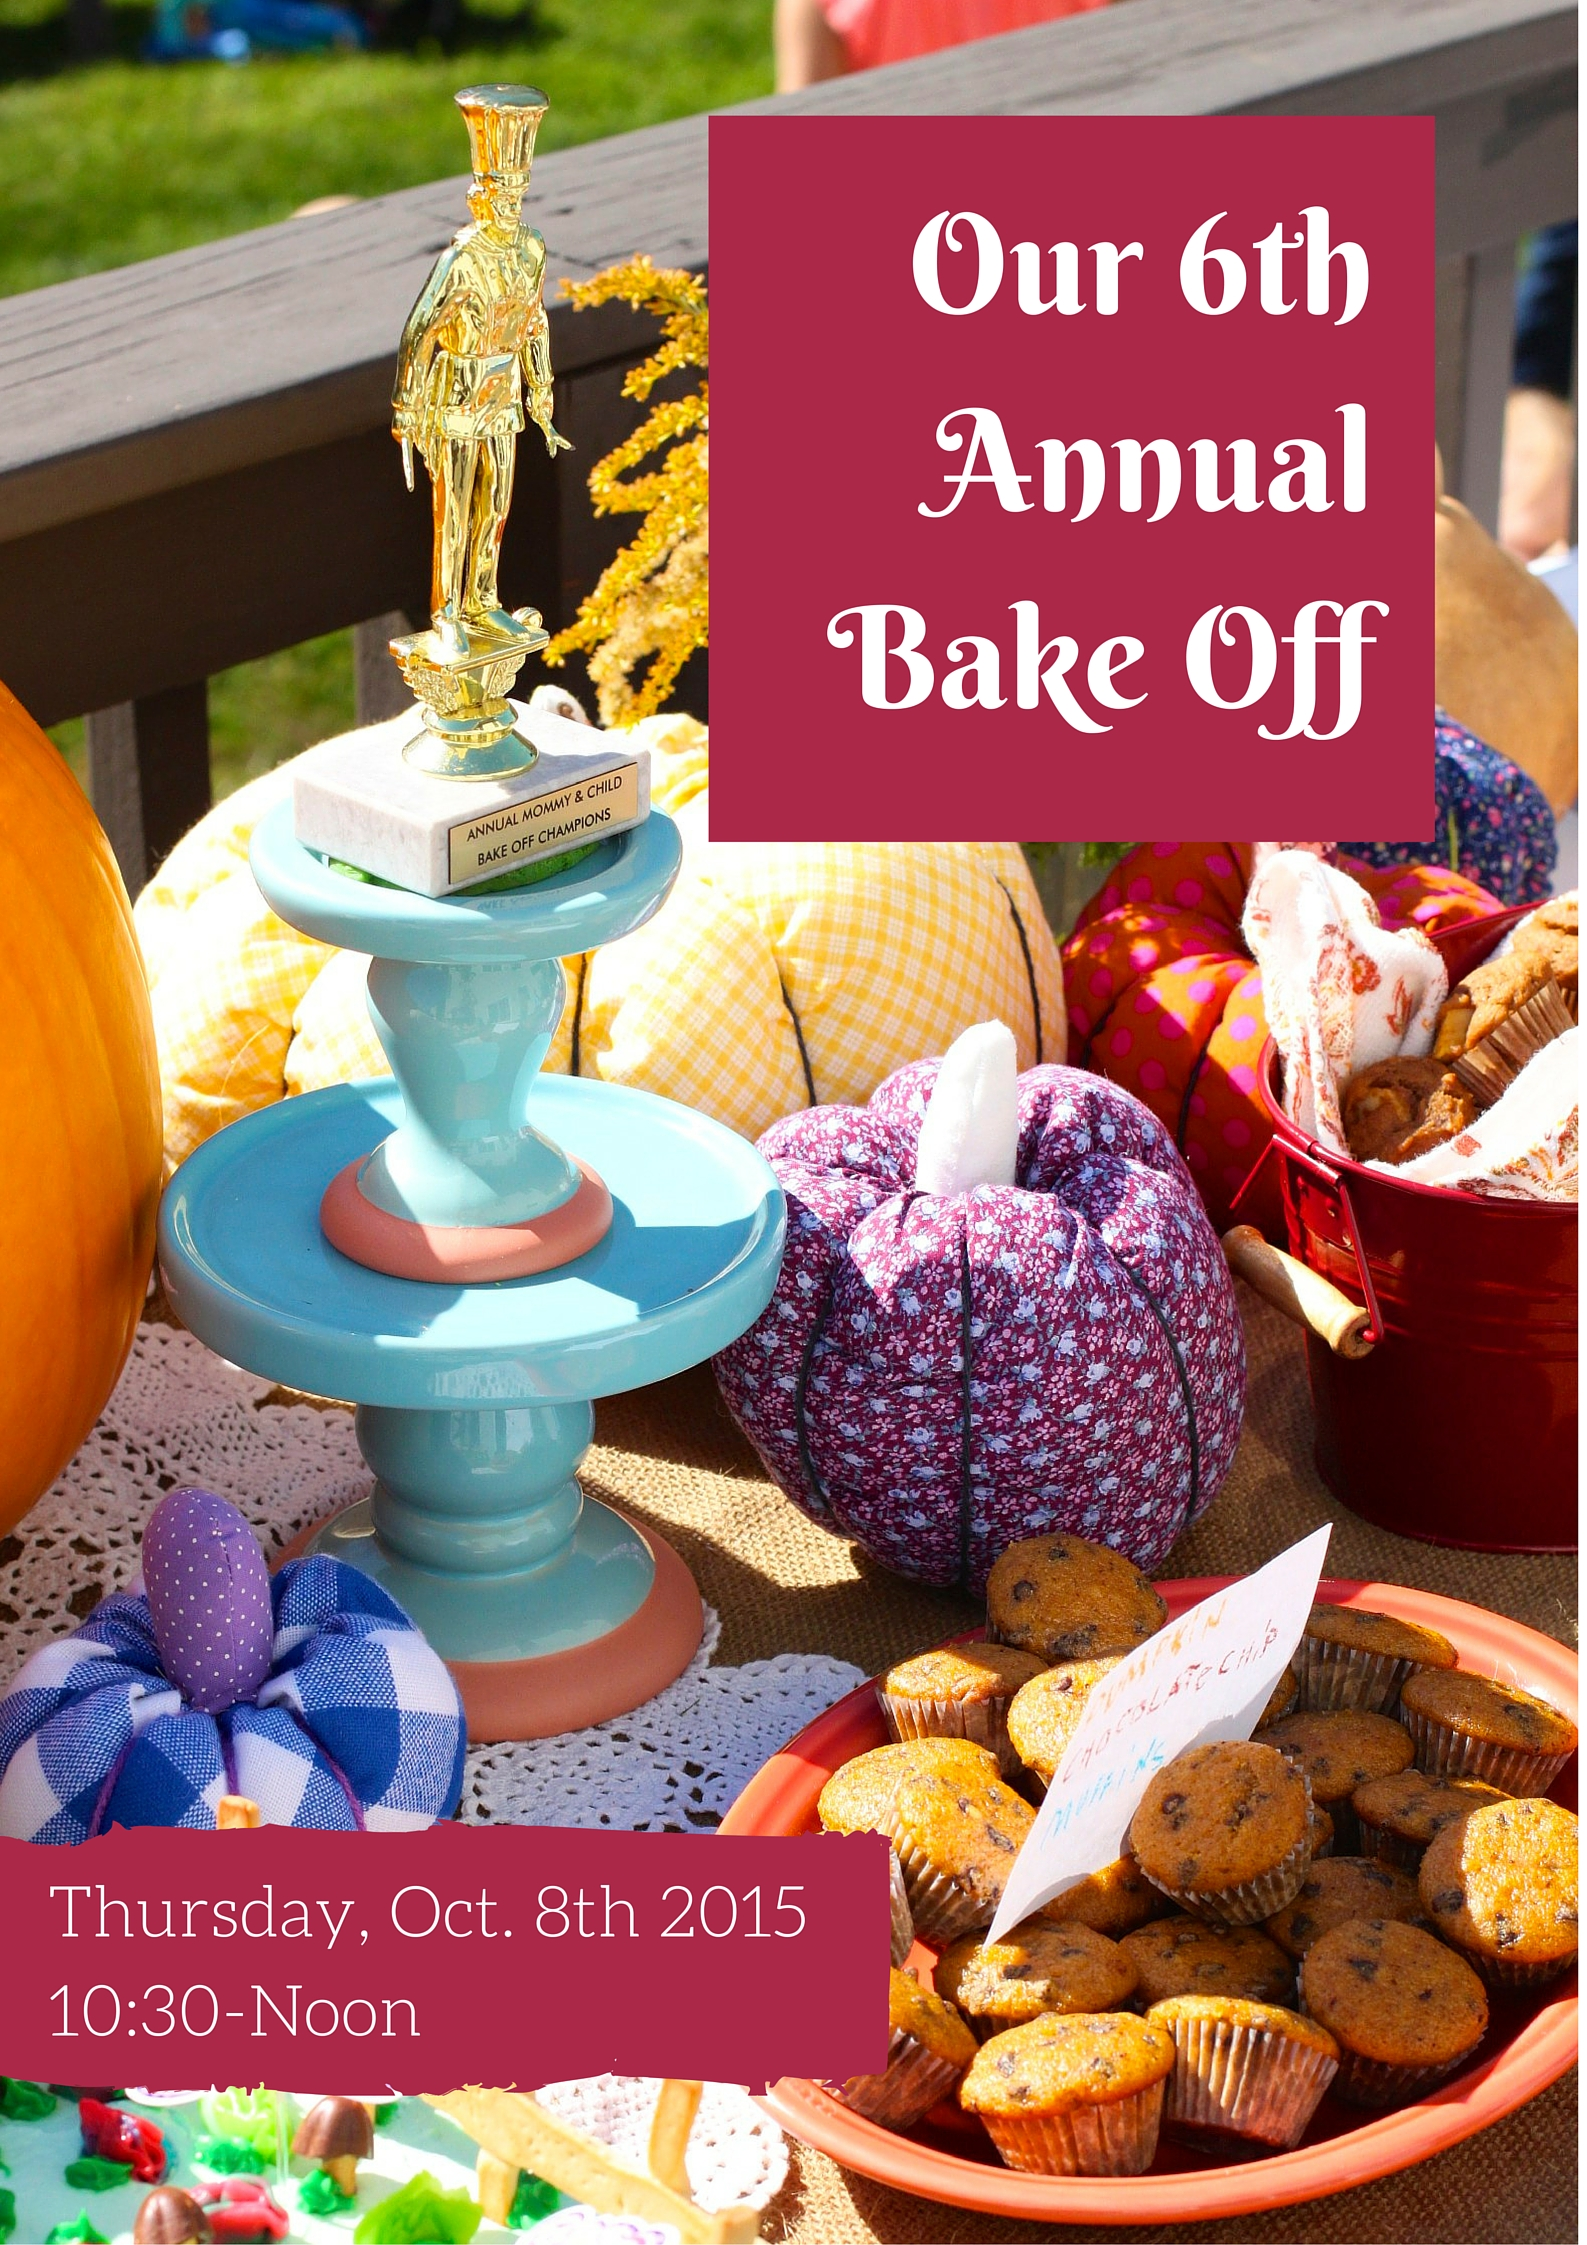 Our 6th Annual Bake Off